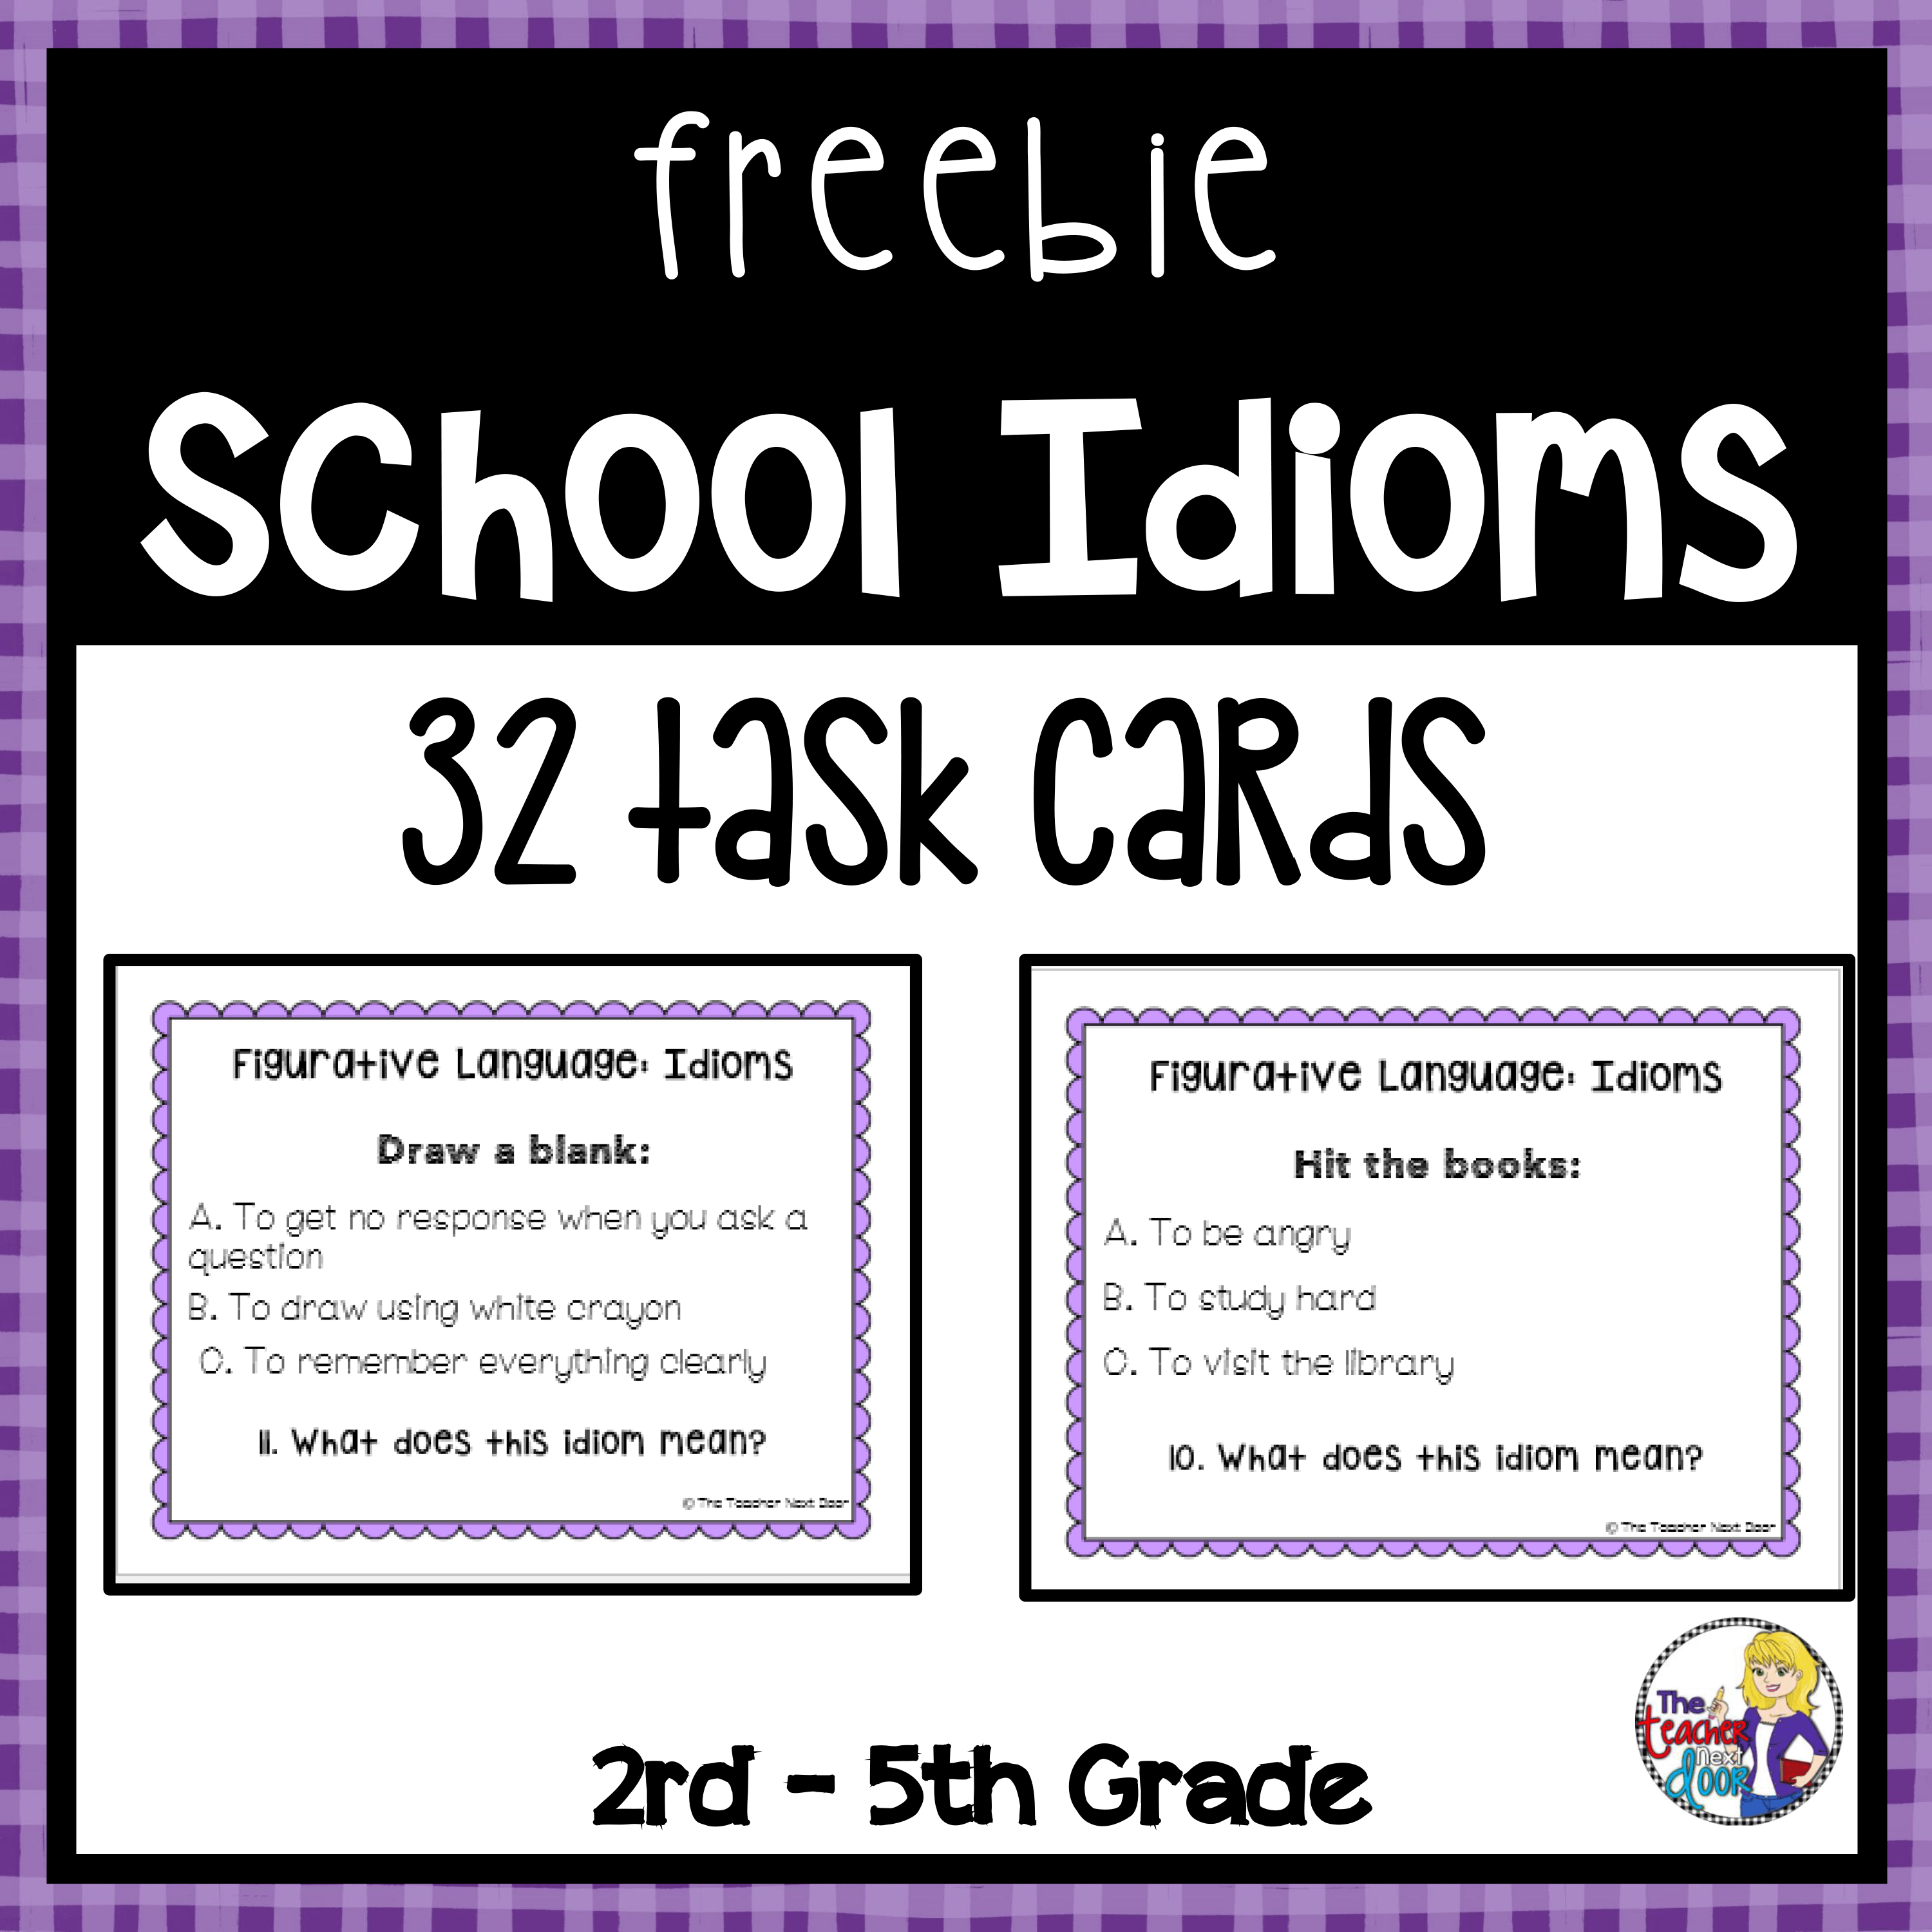 These 32 Task Cards Focus On Idioms Related To School